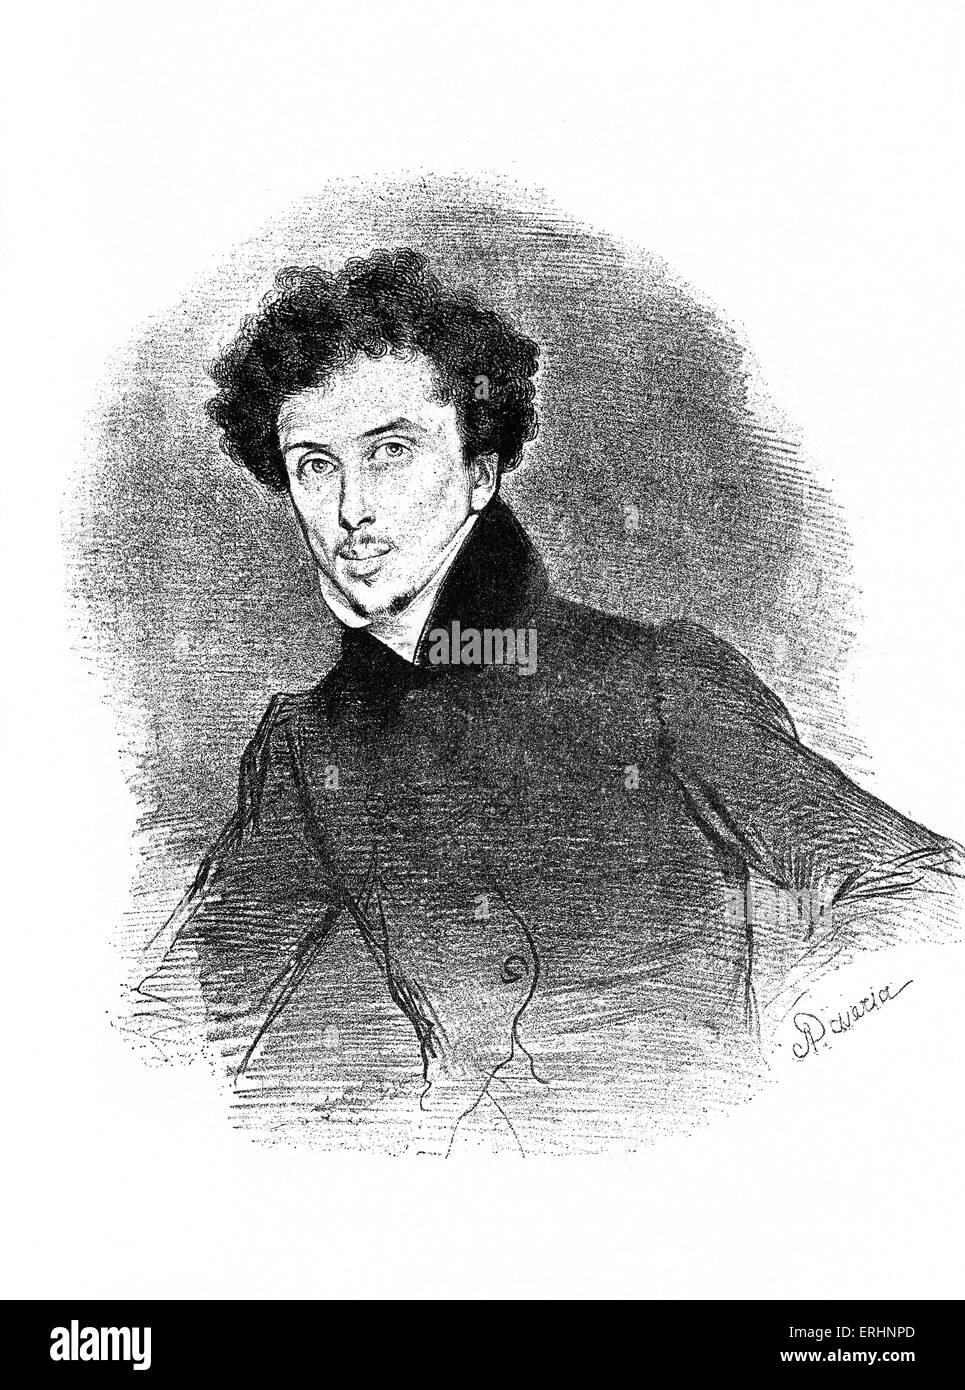 Alexandre Dumas, pere French author and playwright, c. 1832. After lithograph by Achille  Deveria.   24 July  1802 - Stock Image